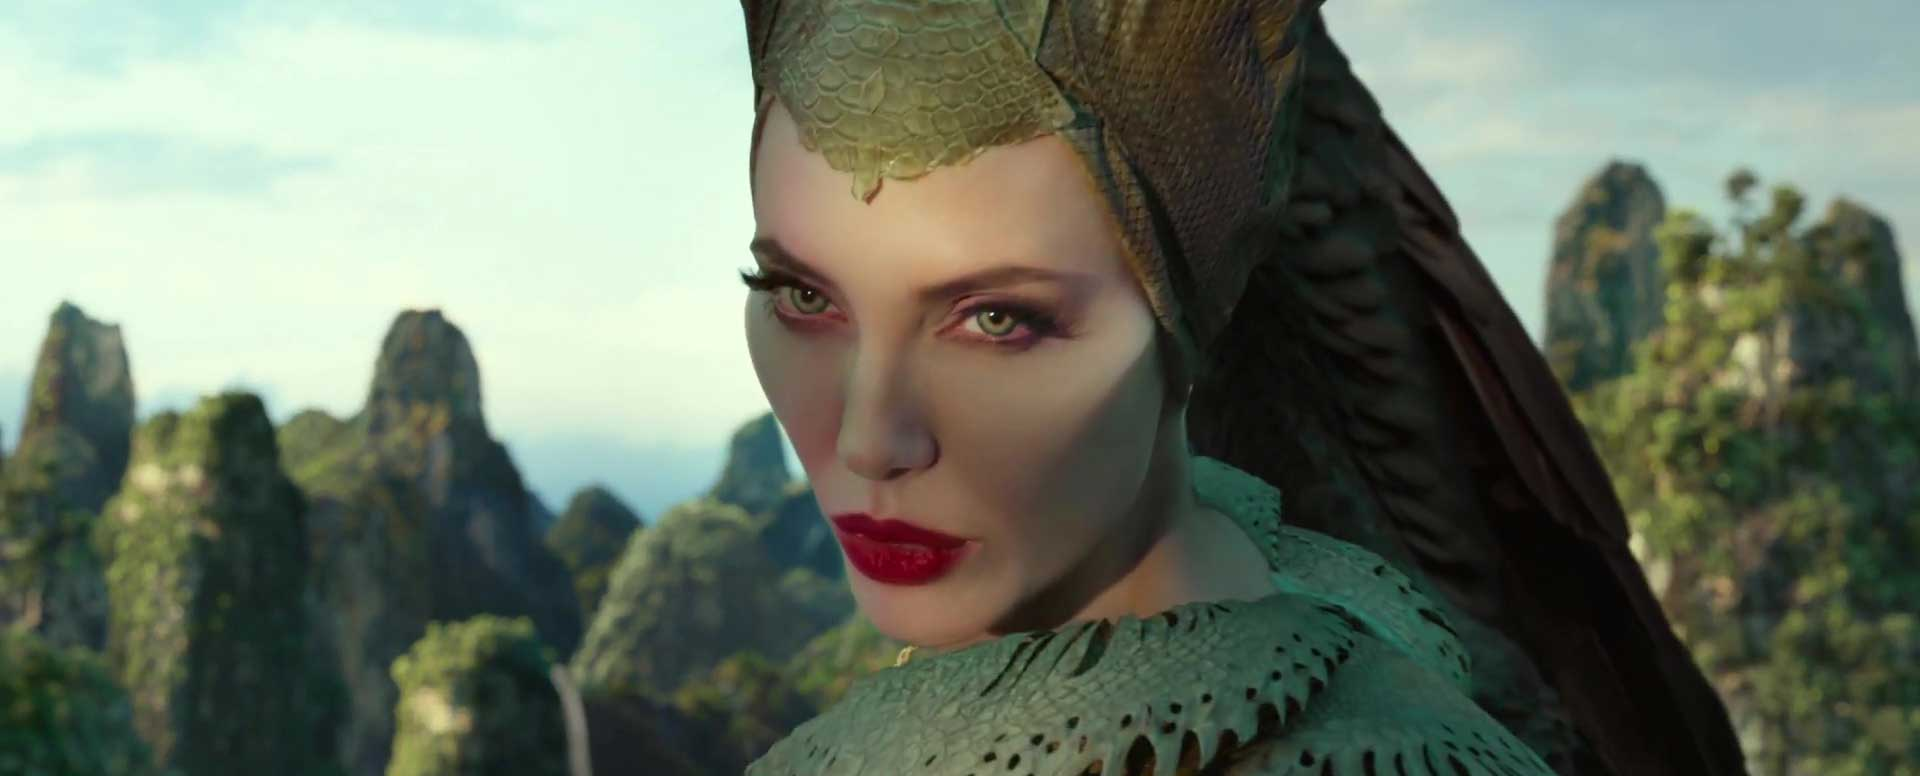 capture maléfique pouvoir mal maleficent mistress evil disney